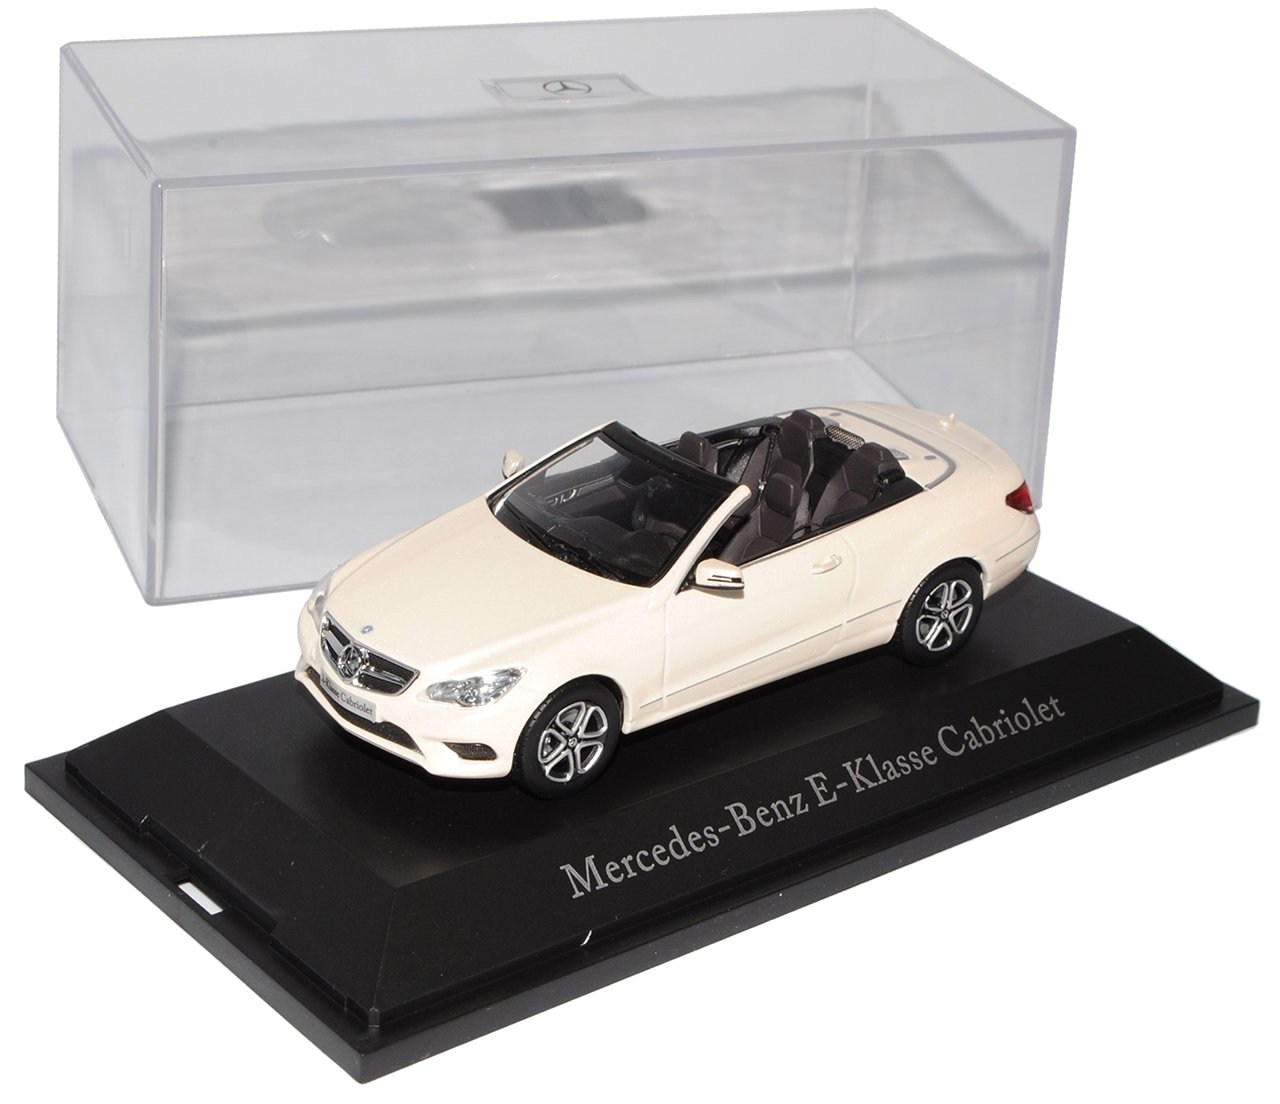 Mercedes-Benz E-Klasse Cabrio Diamant Weiss Weiss Weiss W212 Ab Facelift 2013 1/43 Kyosho Modell Auto f504e4